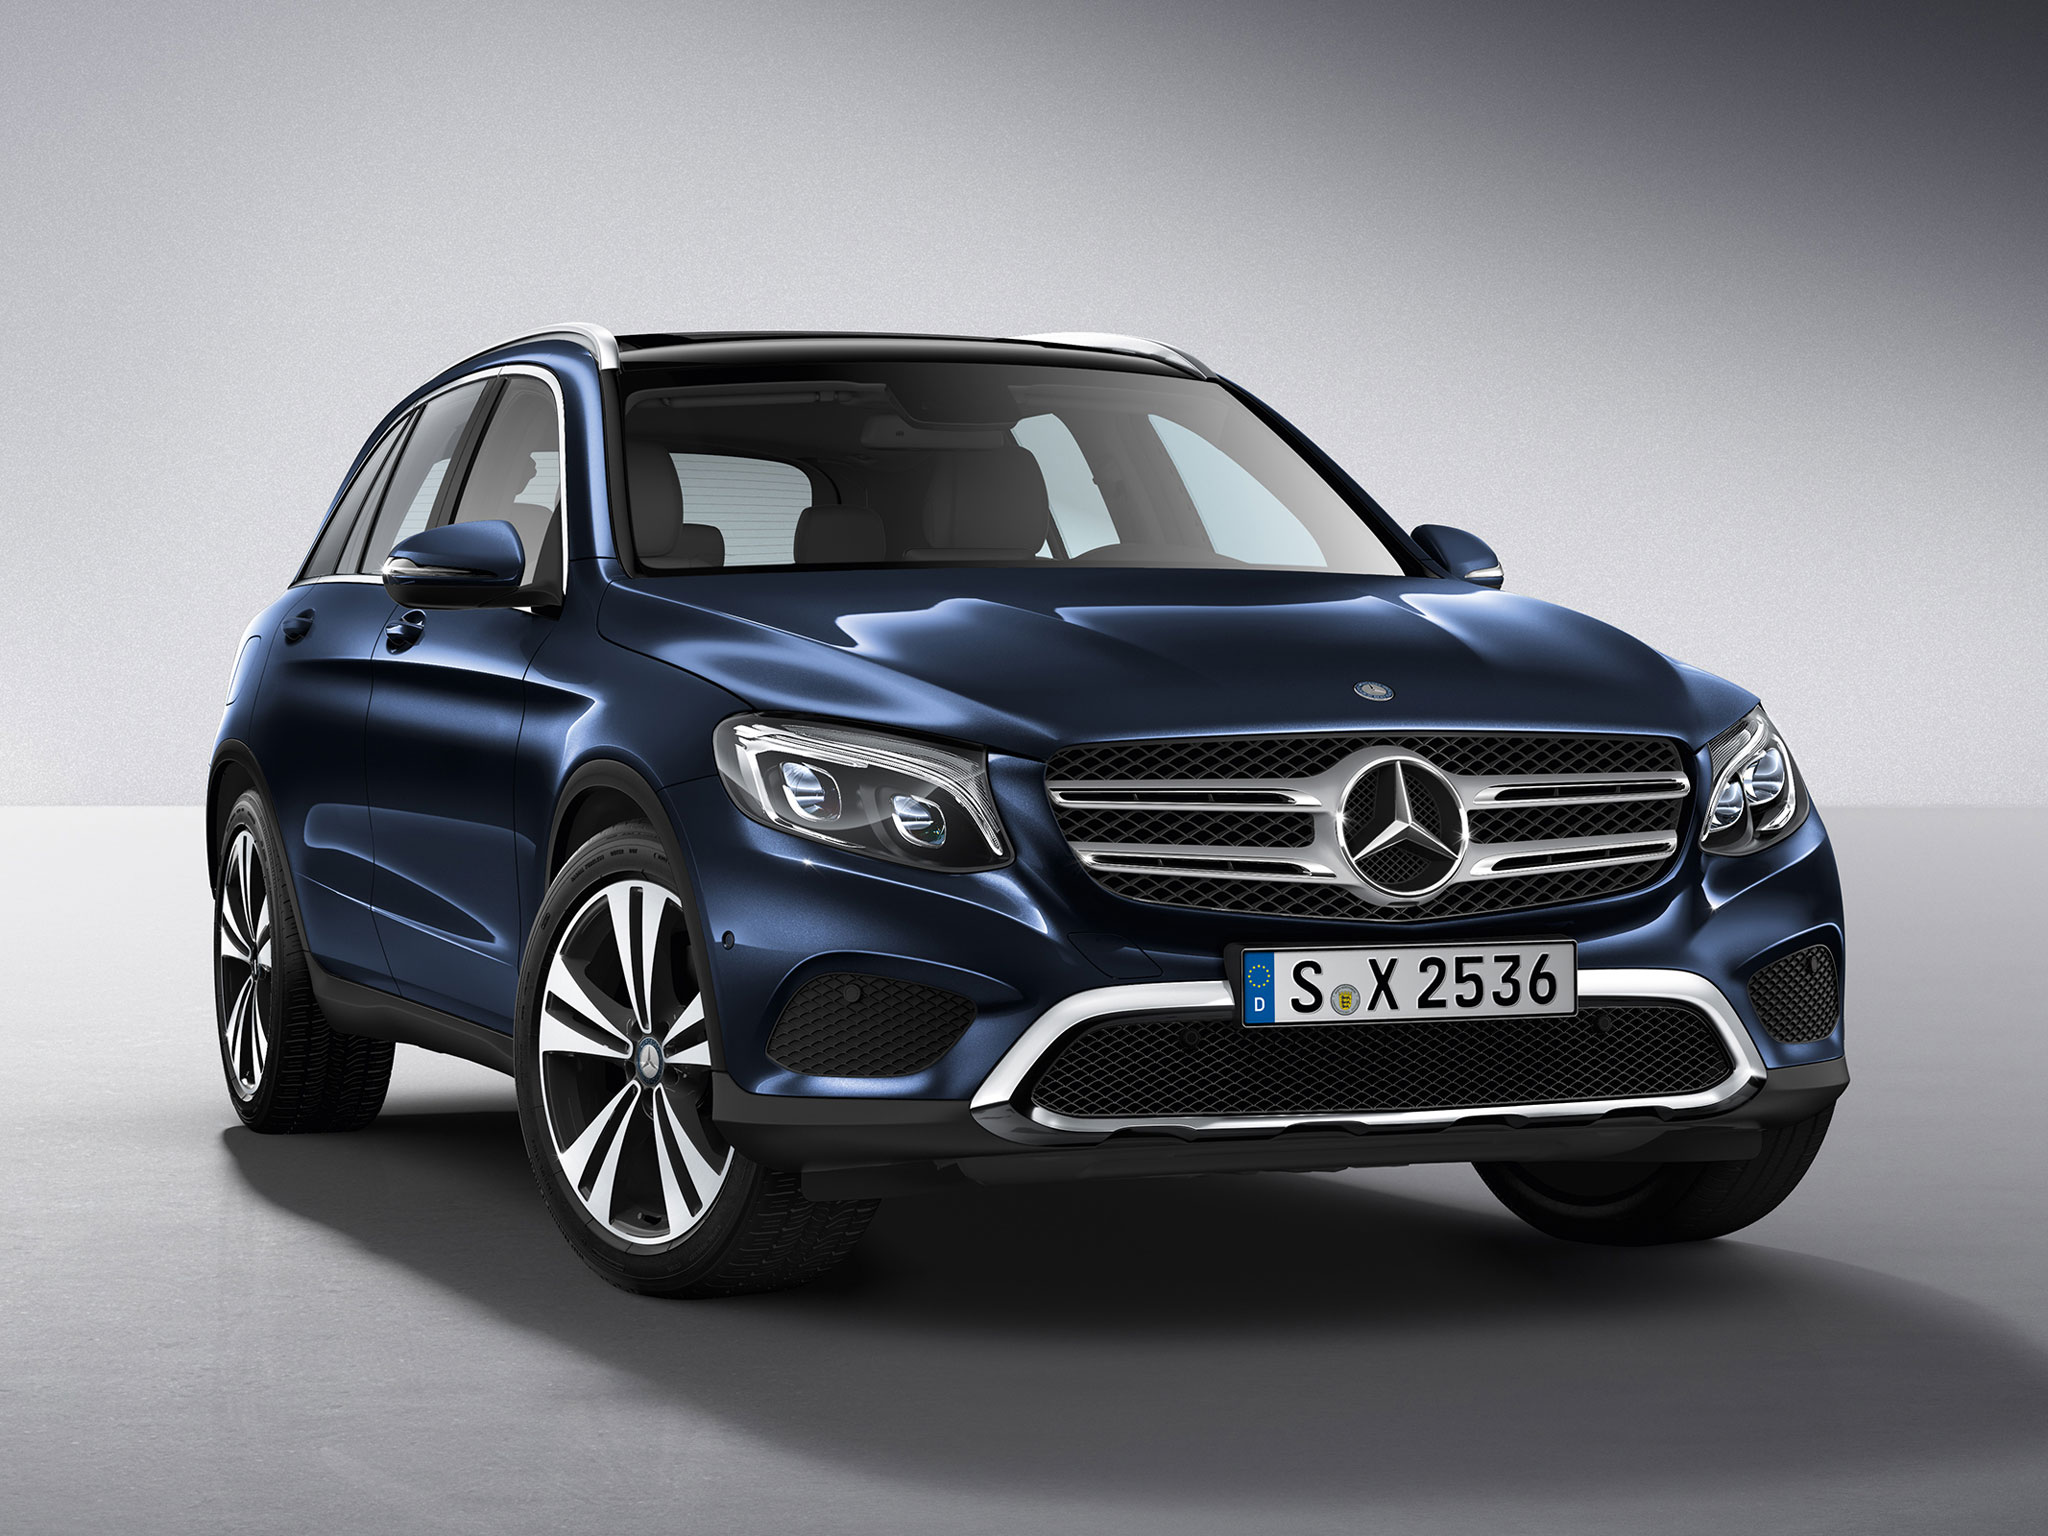 mercedes benz glc 2016 hd wallpapers free download. Black Bedroom Furniture Sets. Home Design Ideas